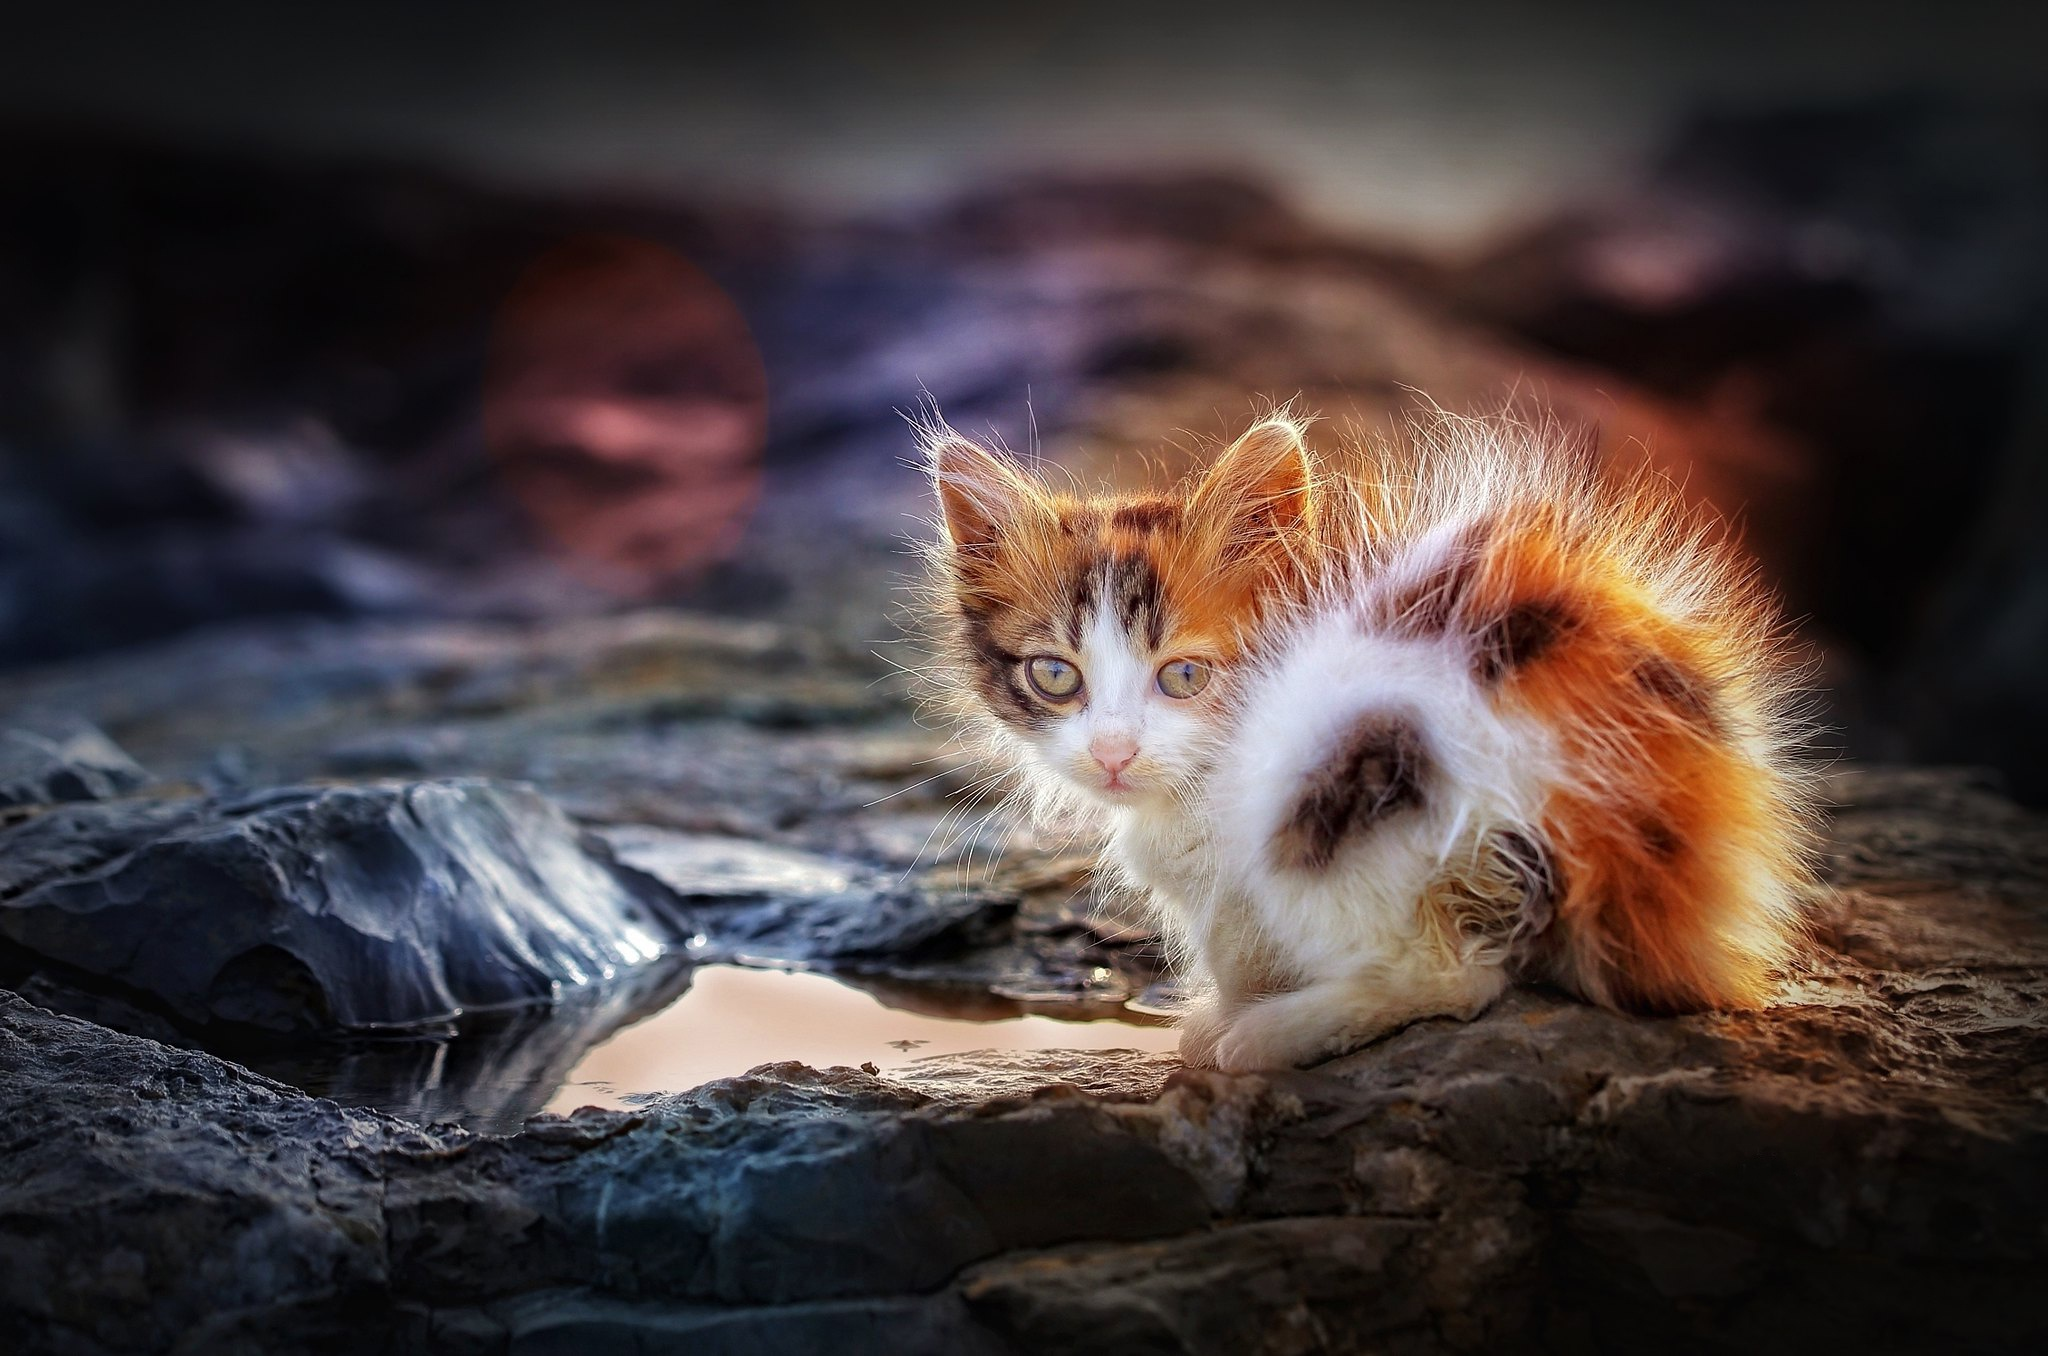 General 2048x1356 cats outdoors animals mammals kittens calico